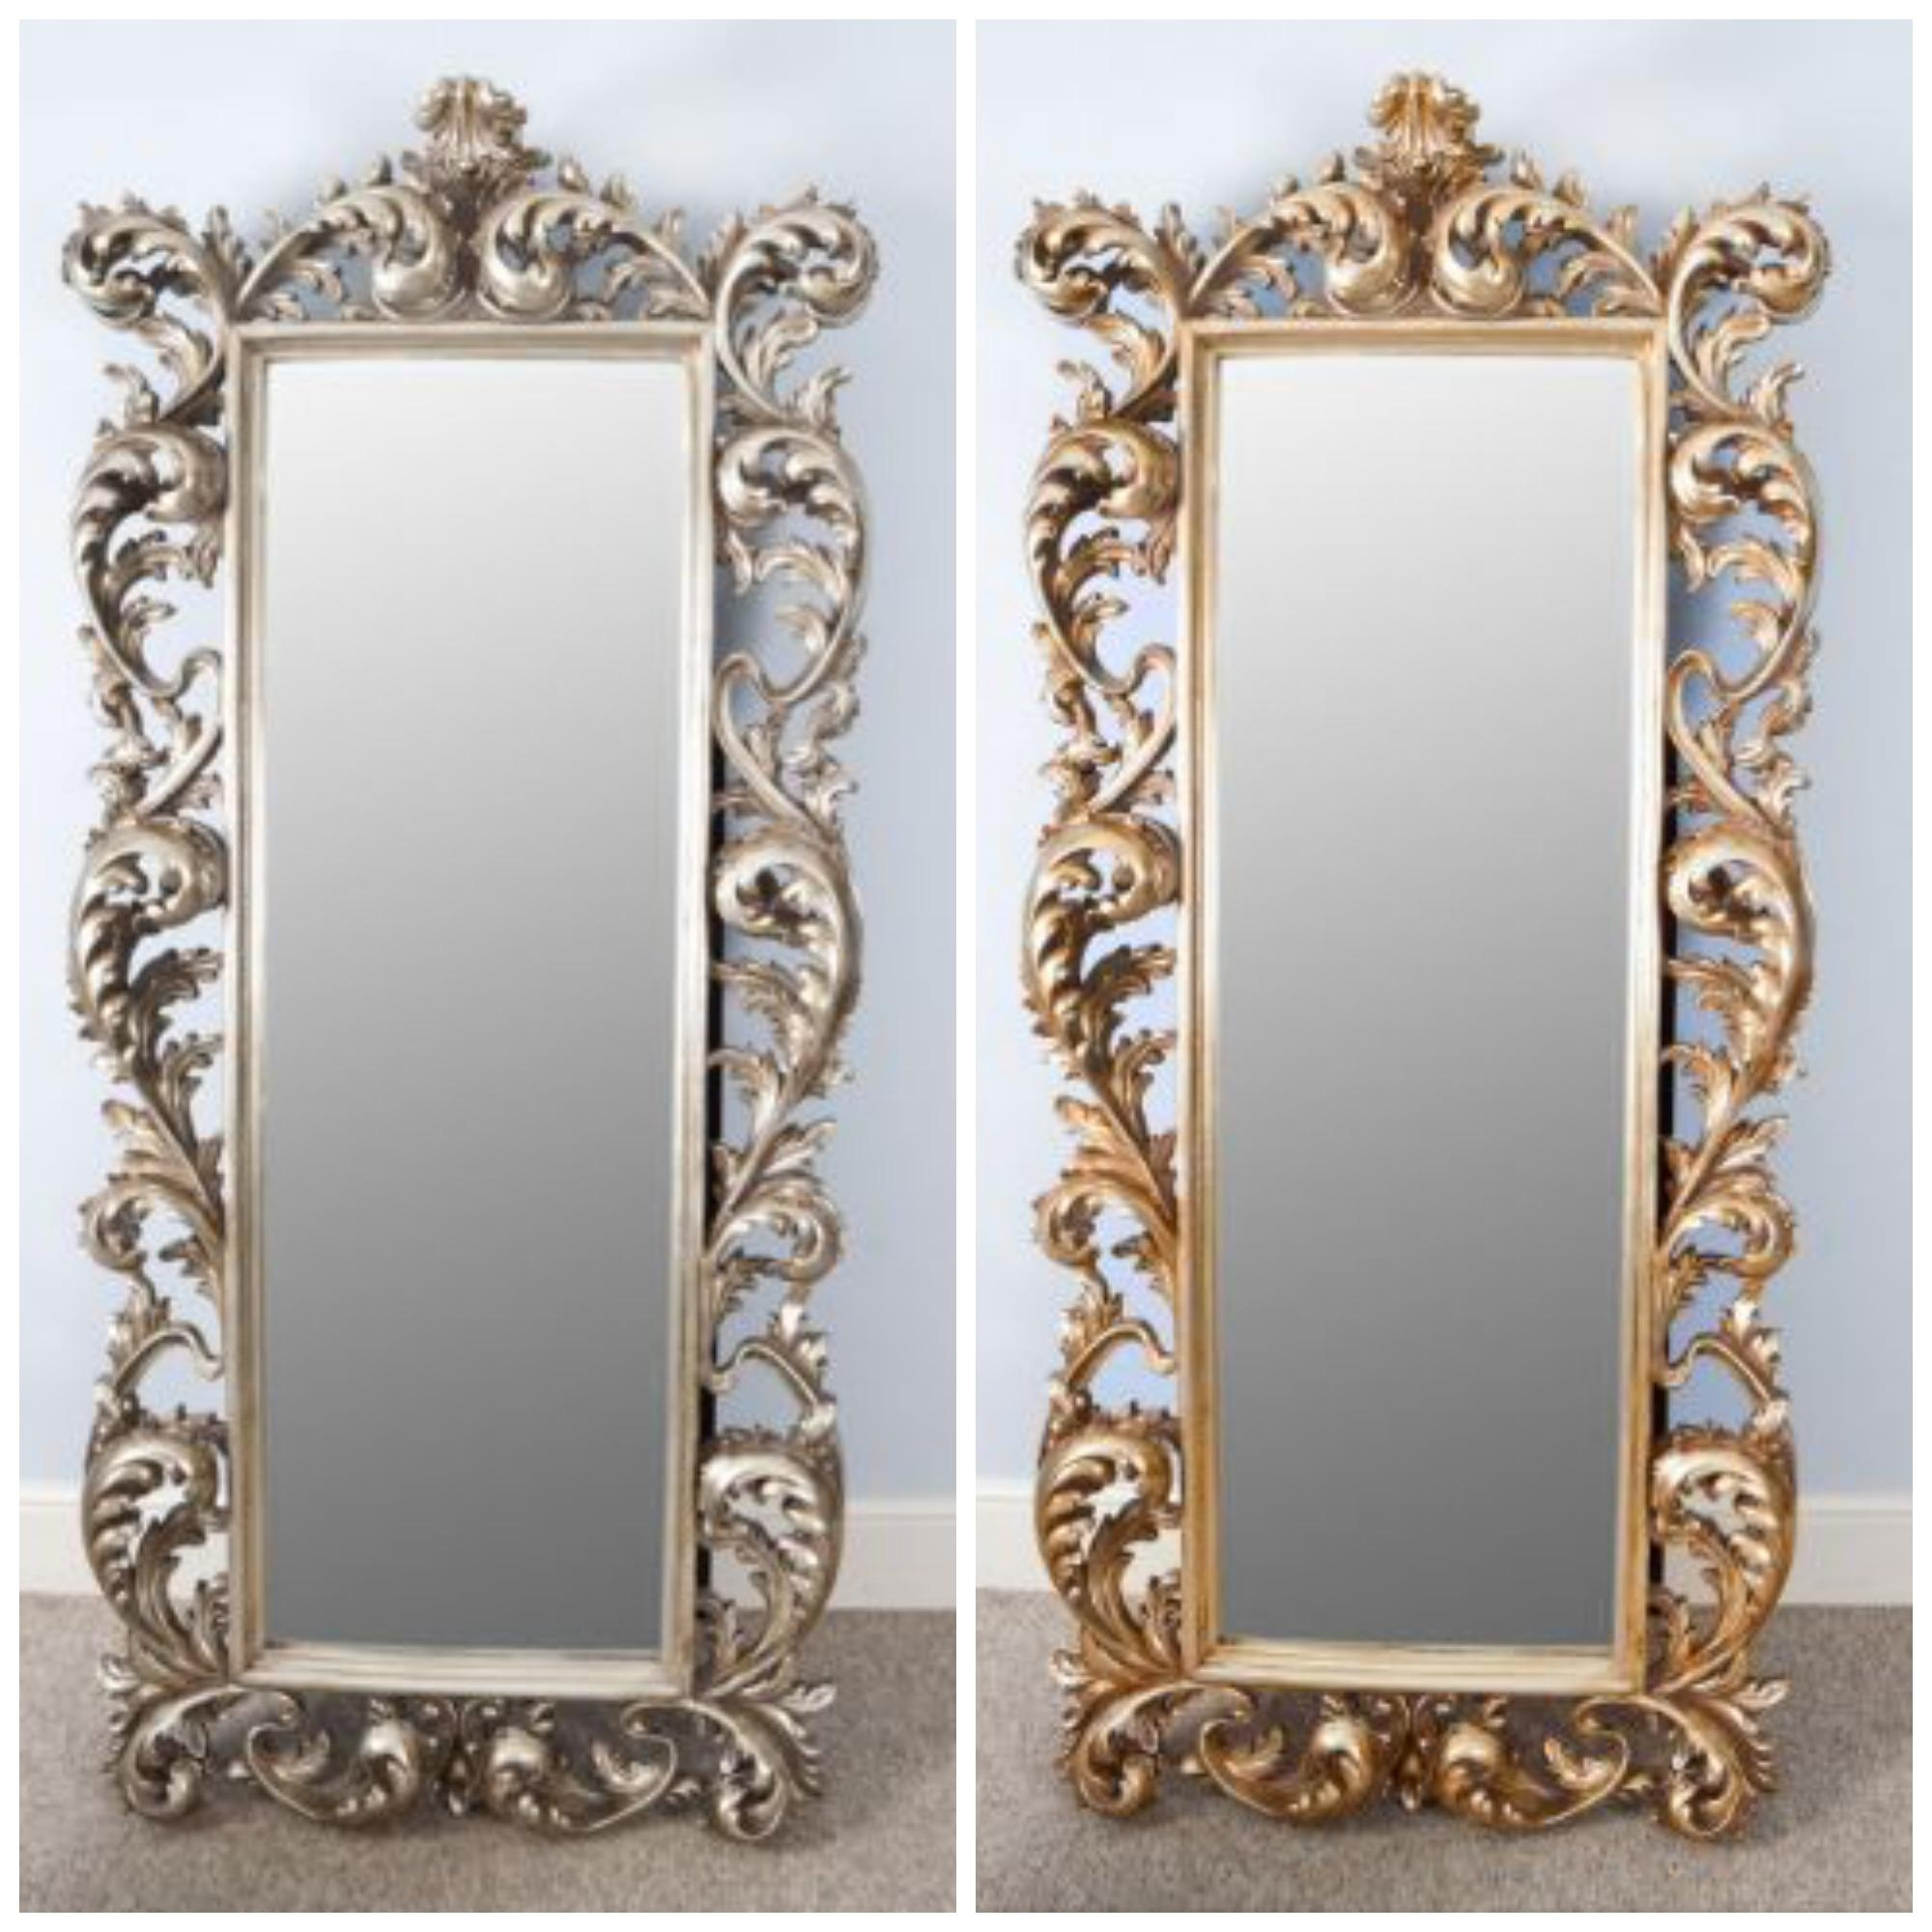 Download Decorative Gold Mirrors | Gen4Congress Within Gold Mirrors For Sale (Image 10 of 20)